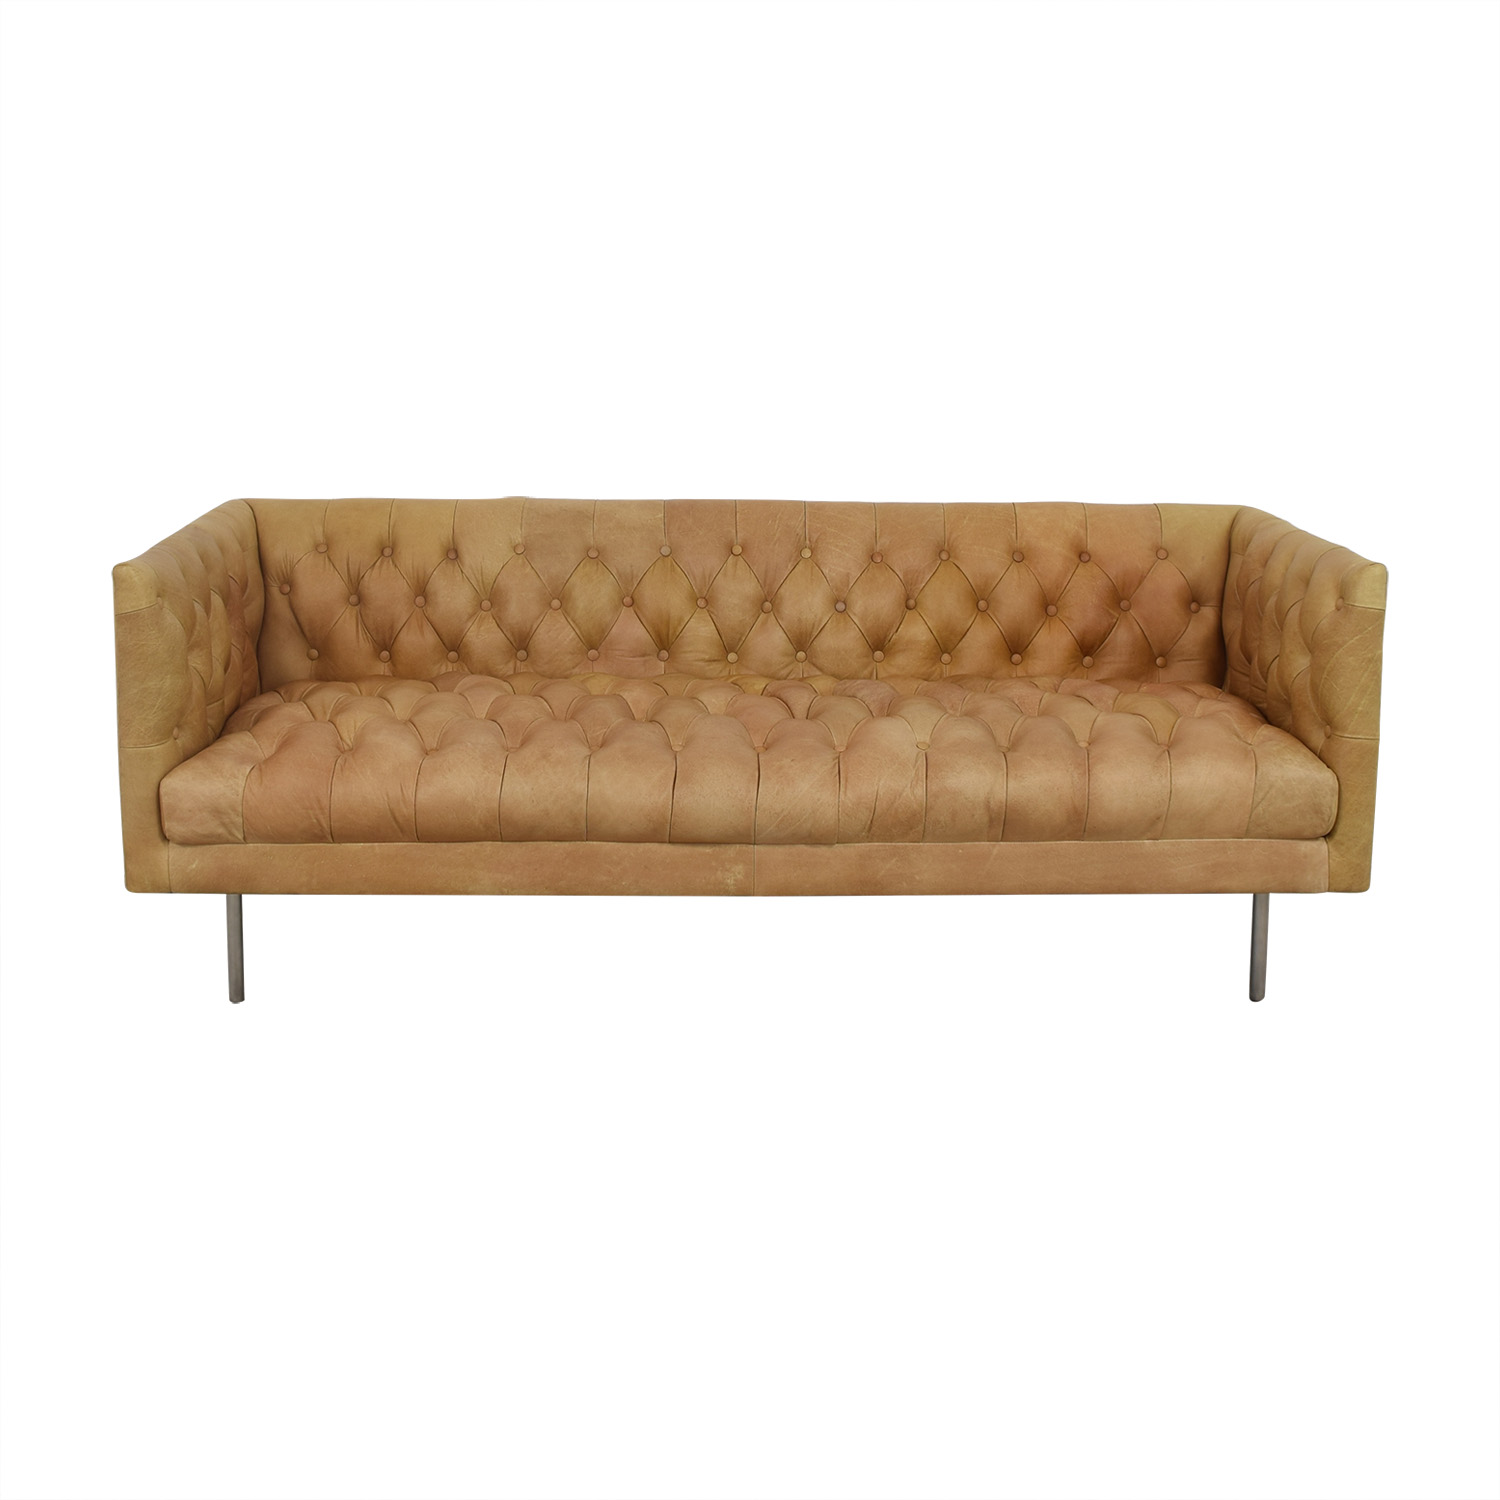 West Elm West Elm Modern Chesterfield Sofa discount